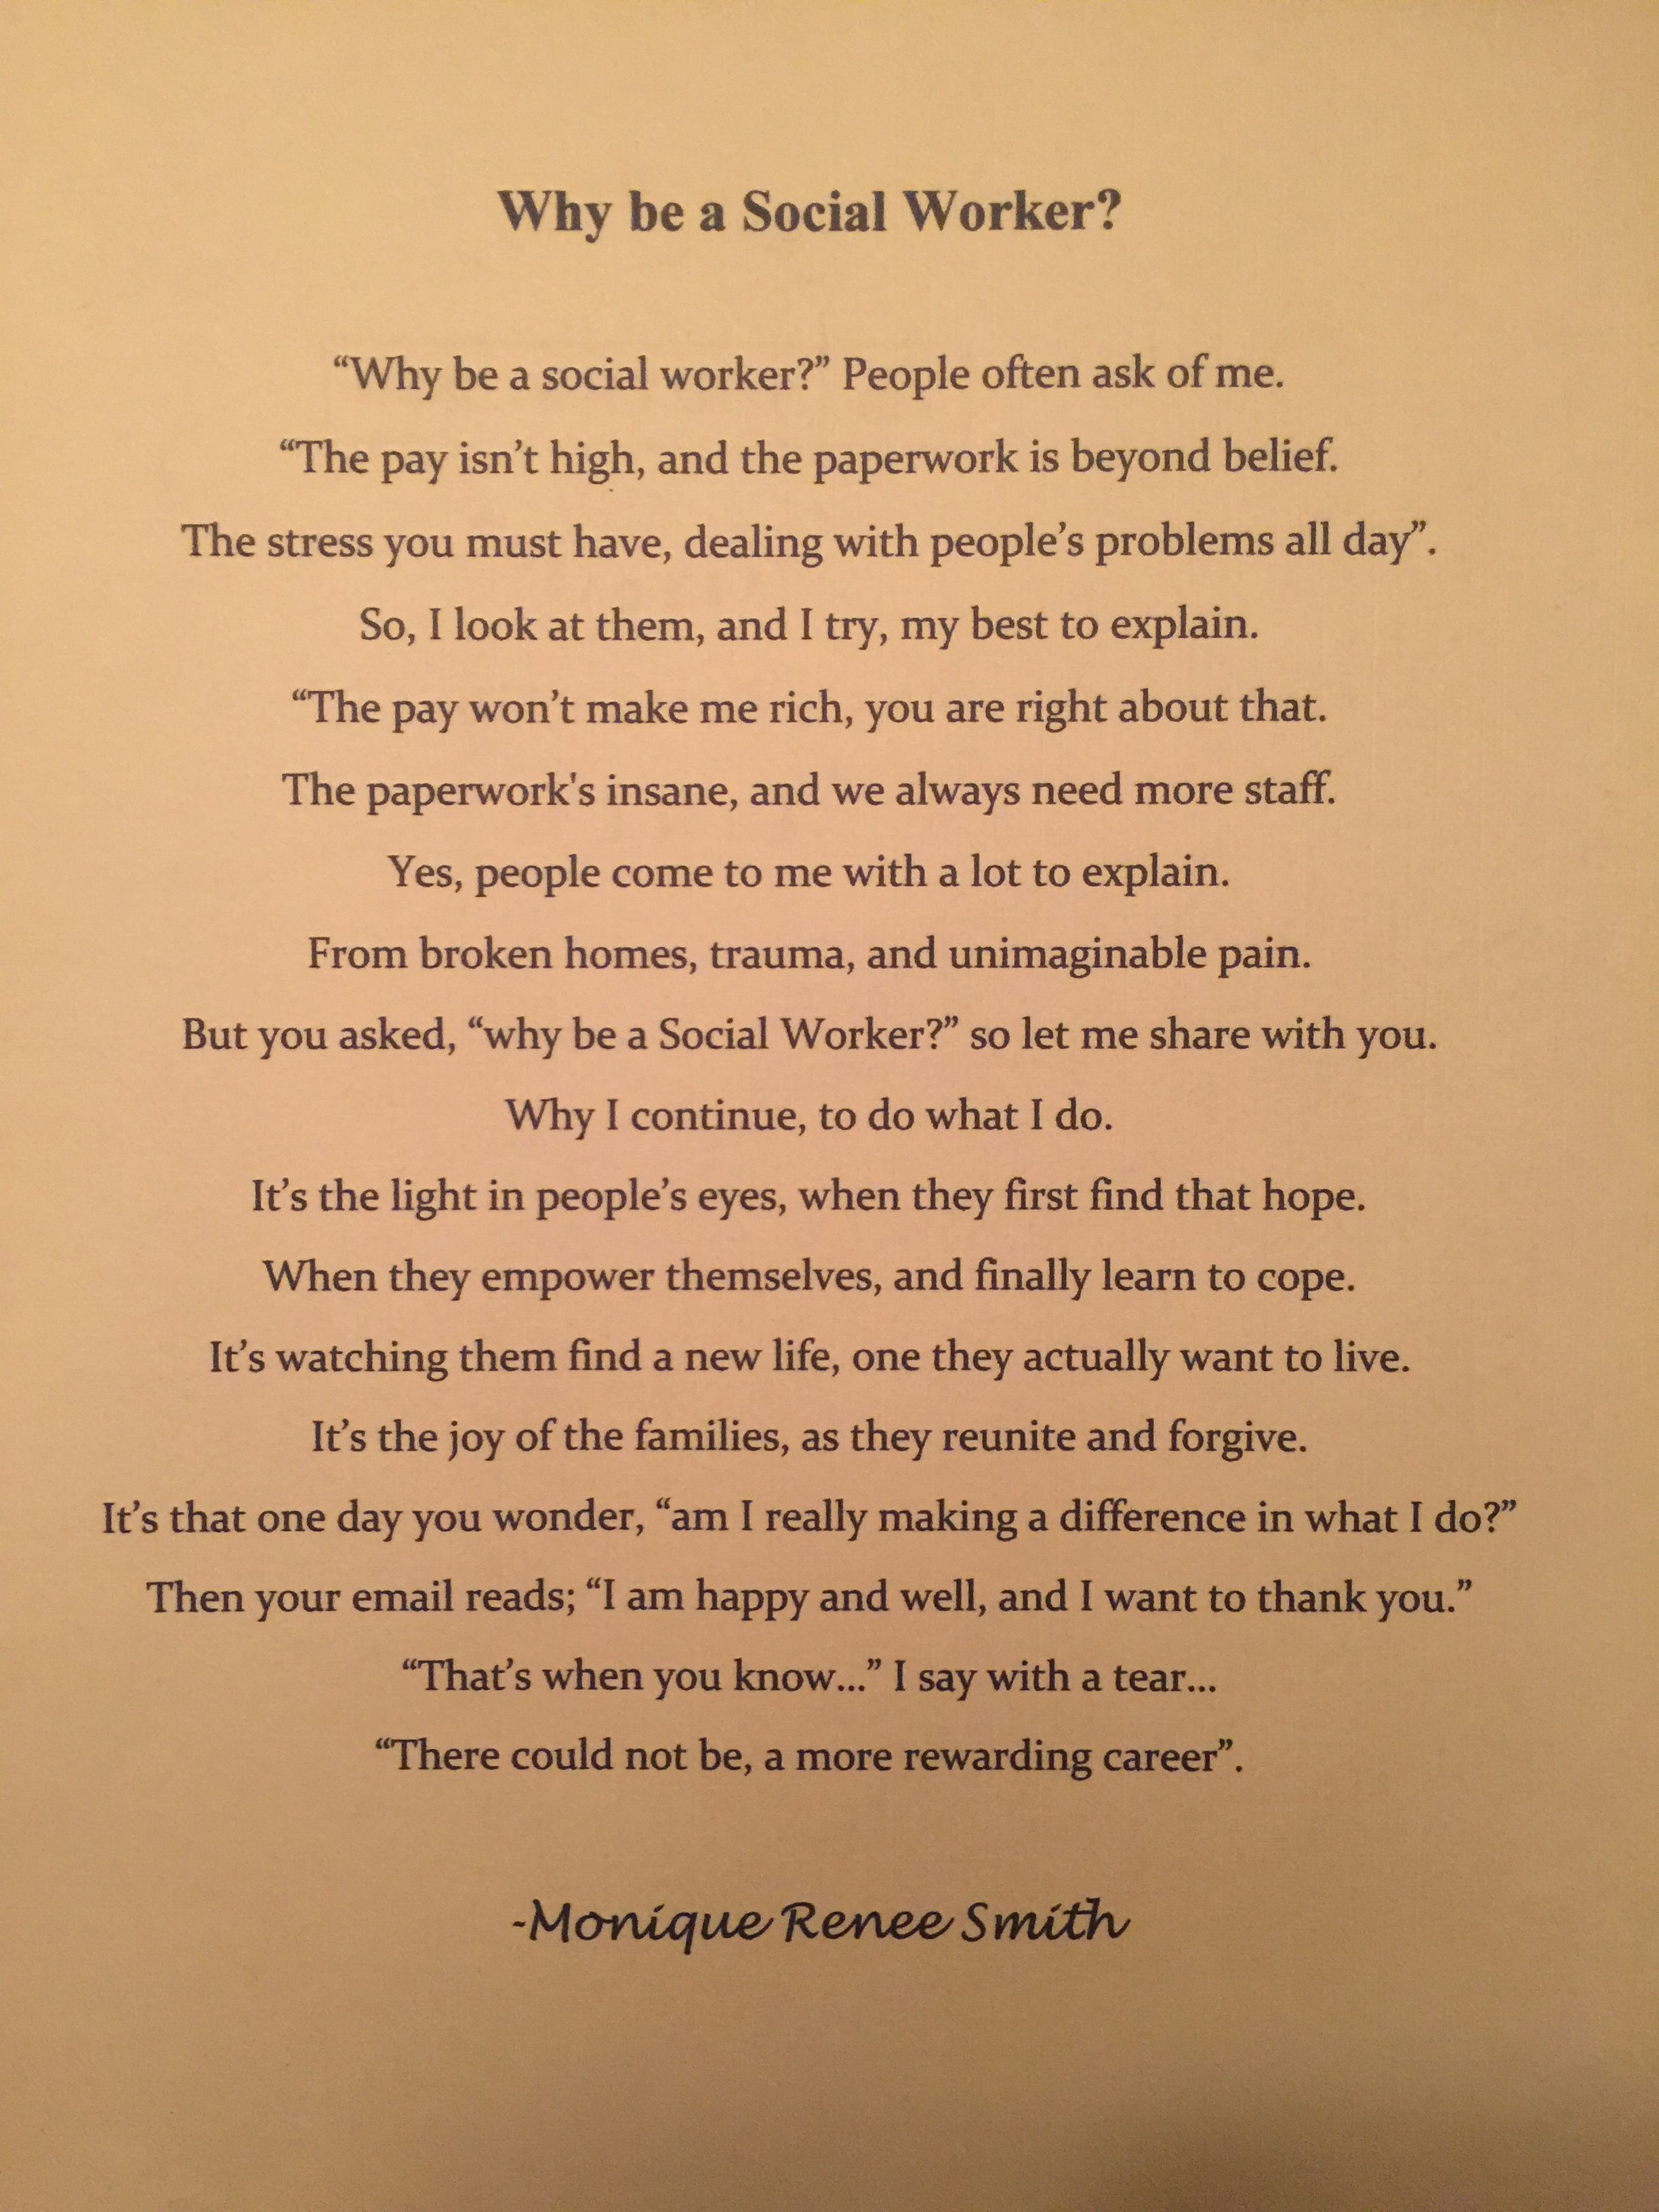 Why Be A Social Worker Poem Social Work Quotes Social Worker Quotes Work Quotes